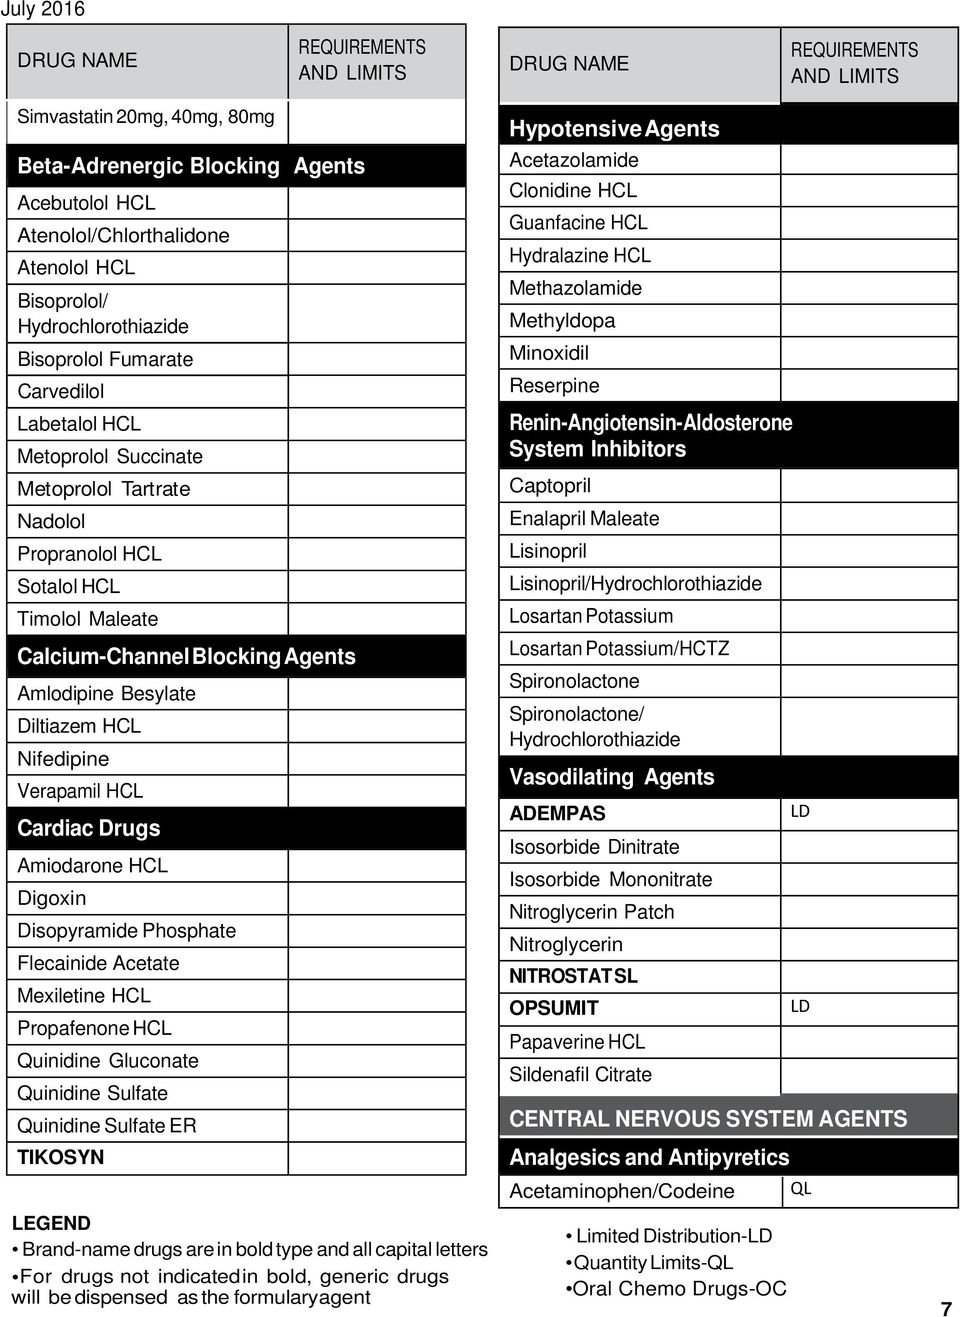 HMO Formulary  (List of Covered Drugs) Last Update: 7/05/ PDF